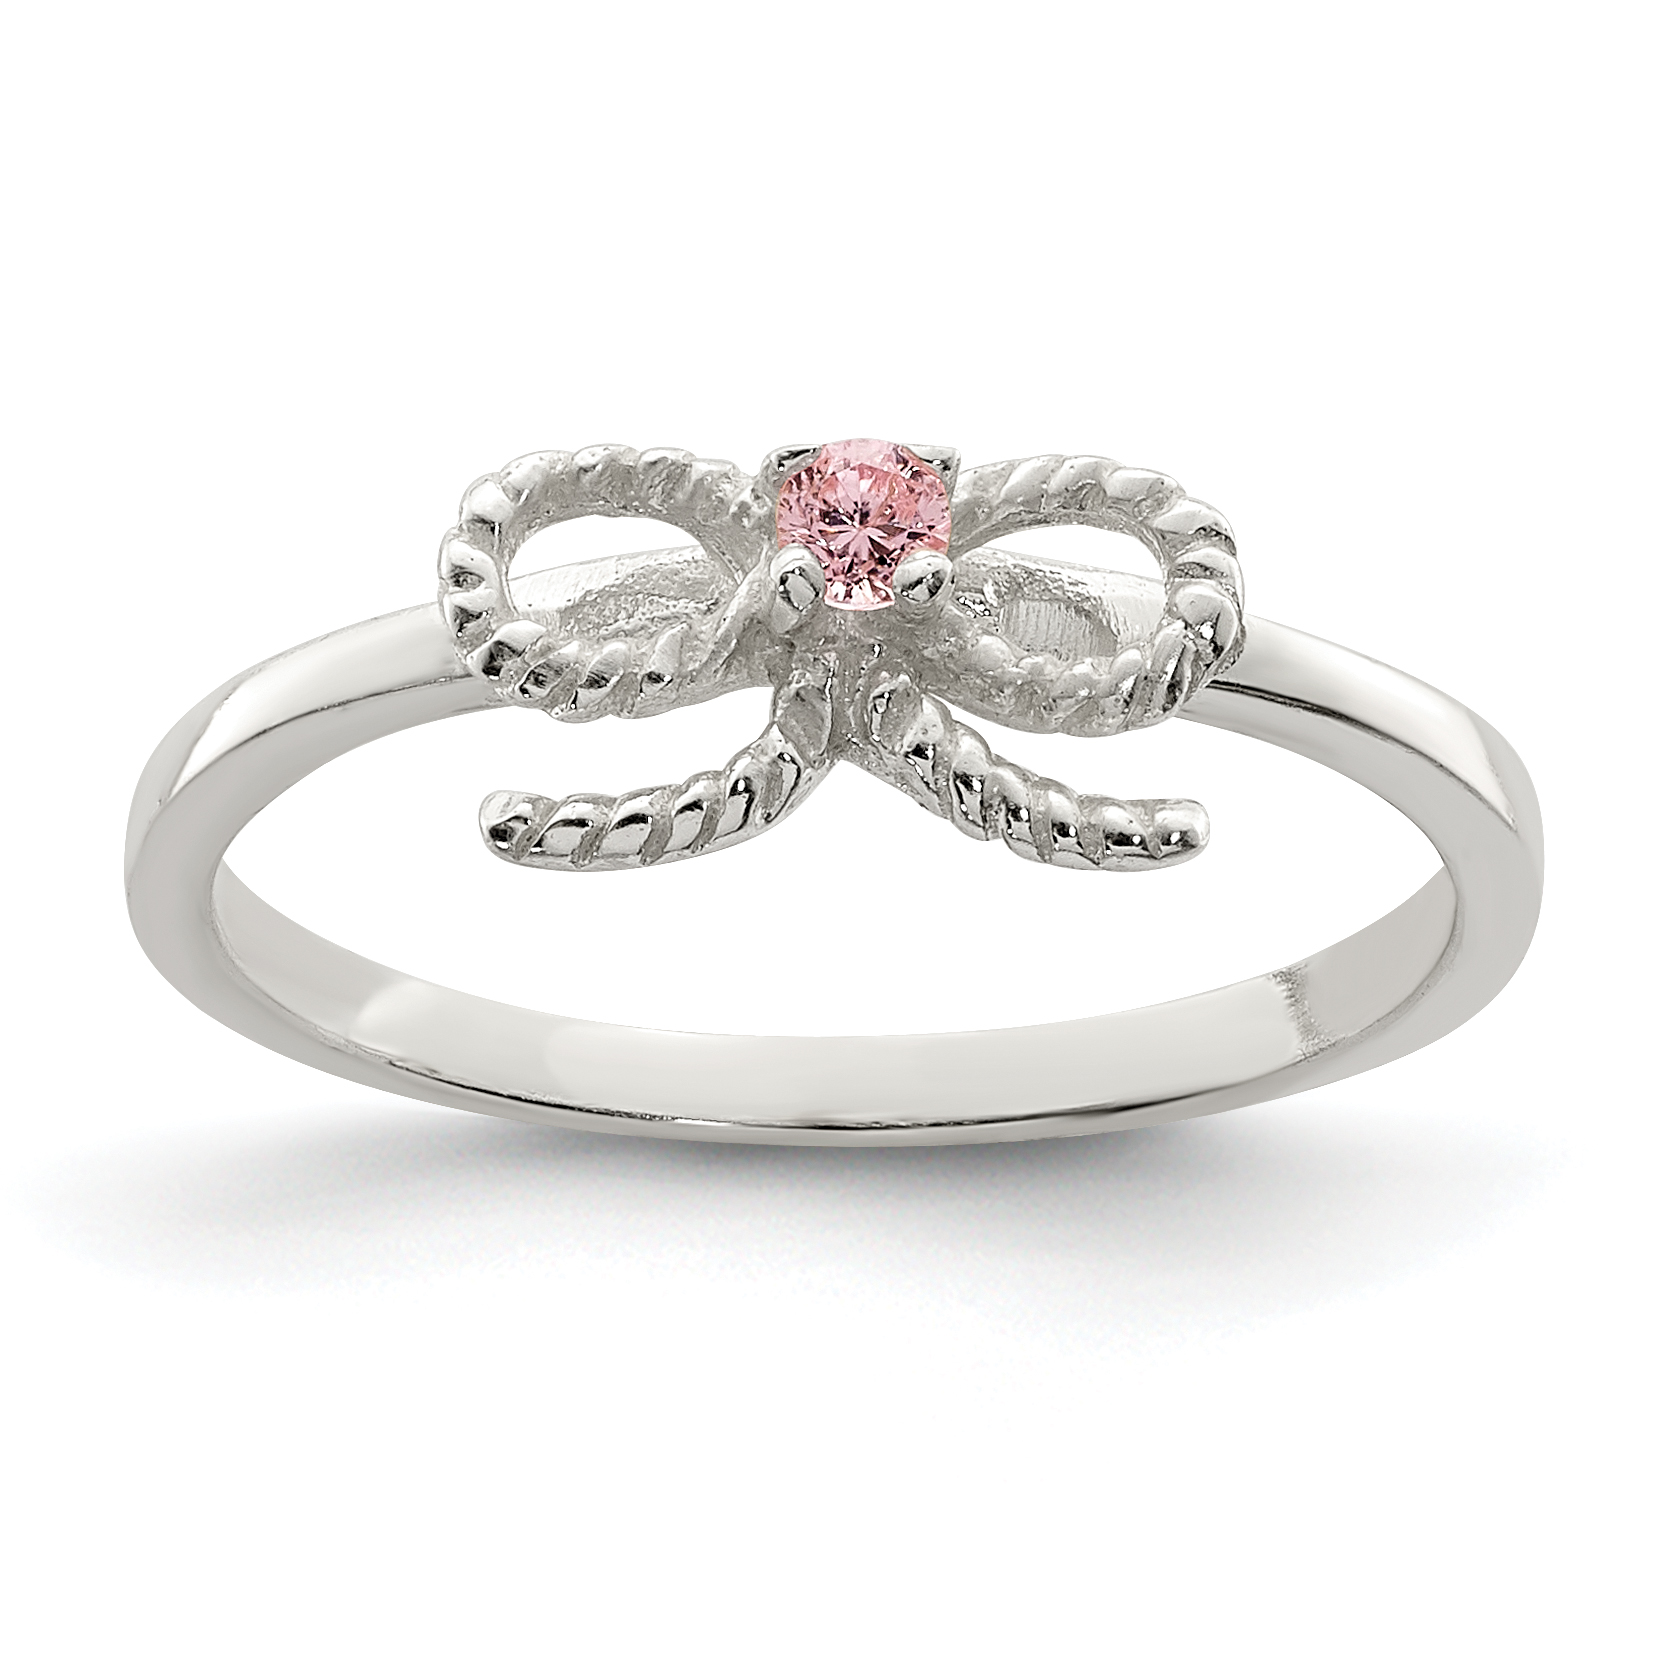 Click Thumbnails To Enlarge: Pink Bow Wedding Ring At Reisefeber.org